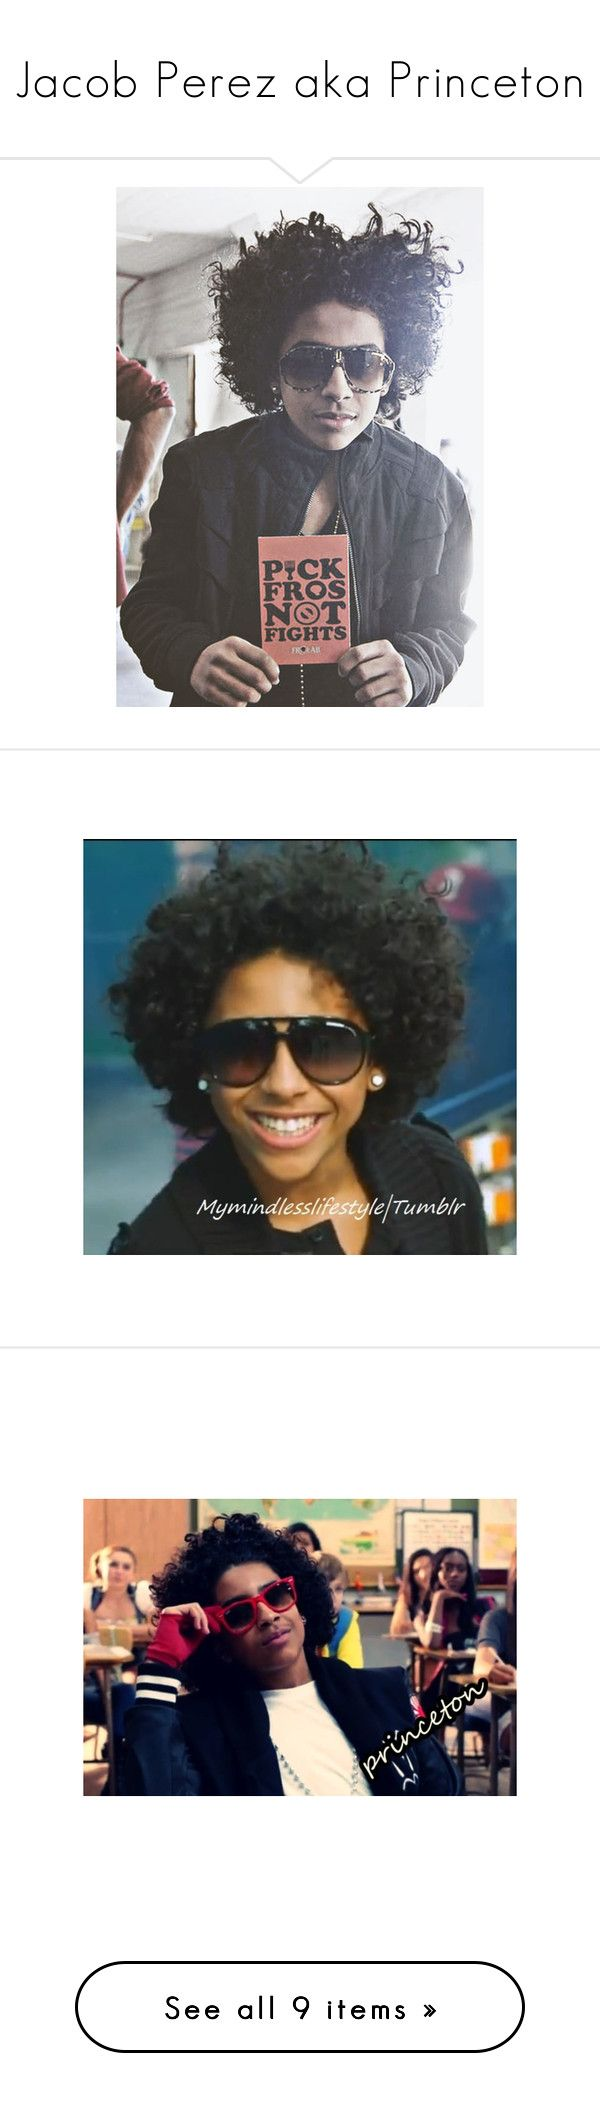 """Jacob Perez aka Princeton"" by chassielovertte ❤ liked on Polyvore featuring princeton, mindless behavior, mb, people, mindless, boys, prince, home, children's room and children's bedding"